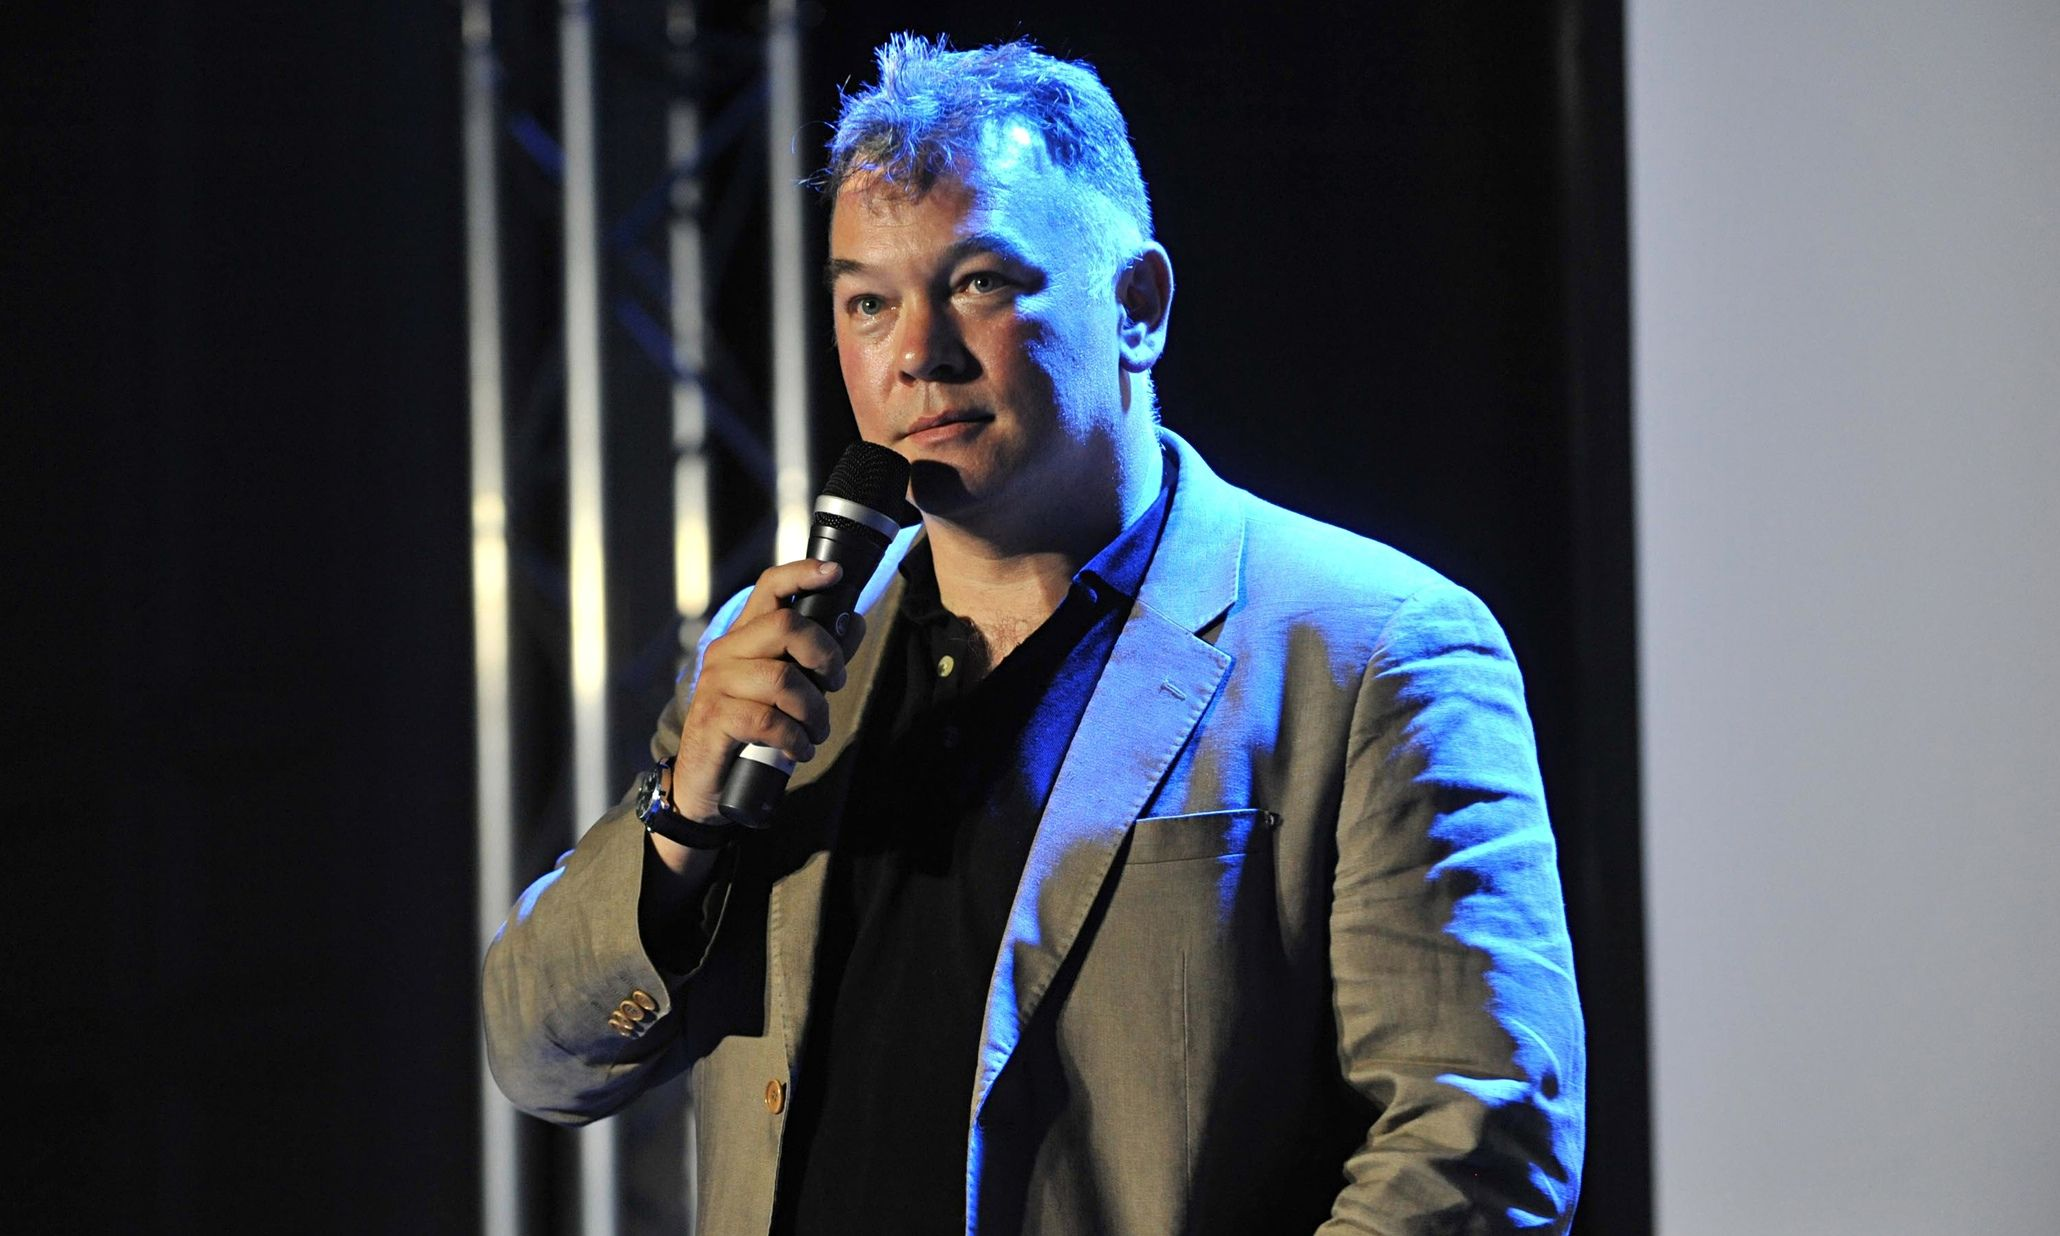 Secondary Ticketing Might Be Legal But That Doesn T Make It Morally Right Stewart Lee Morally Right Edinburgh Fringe Festival